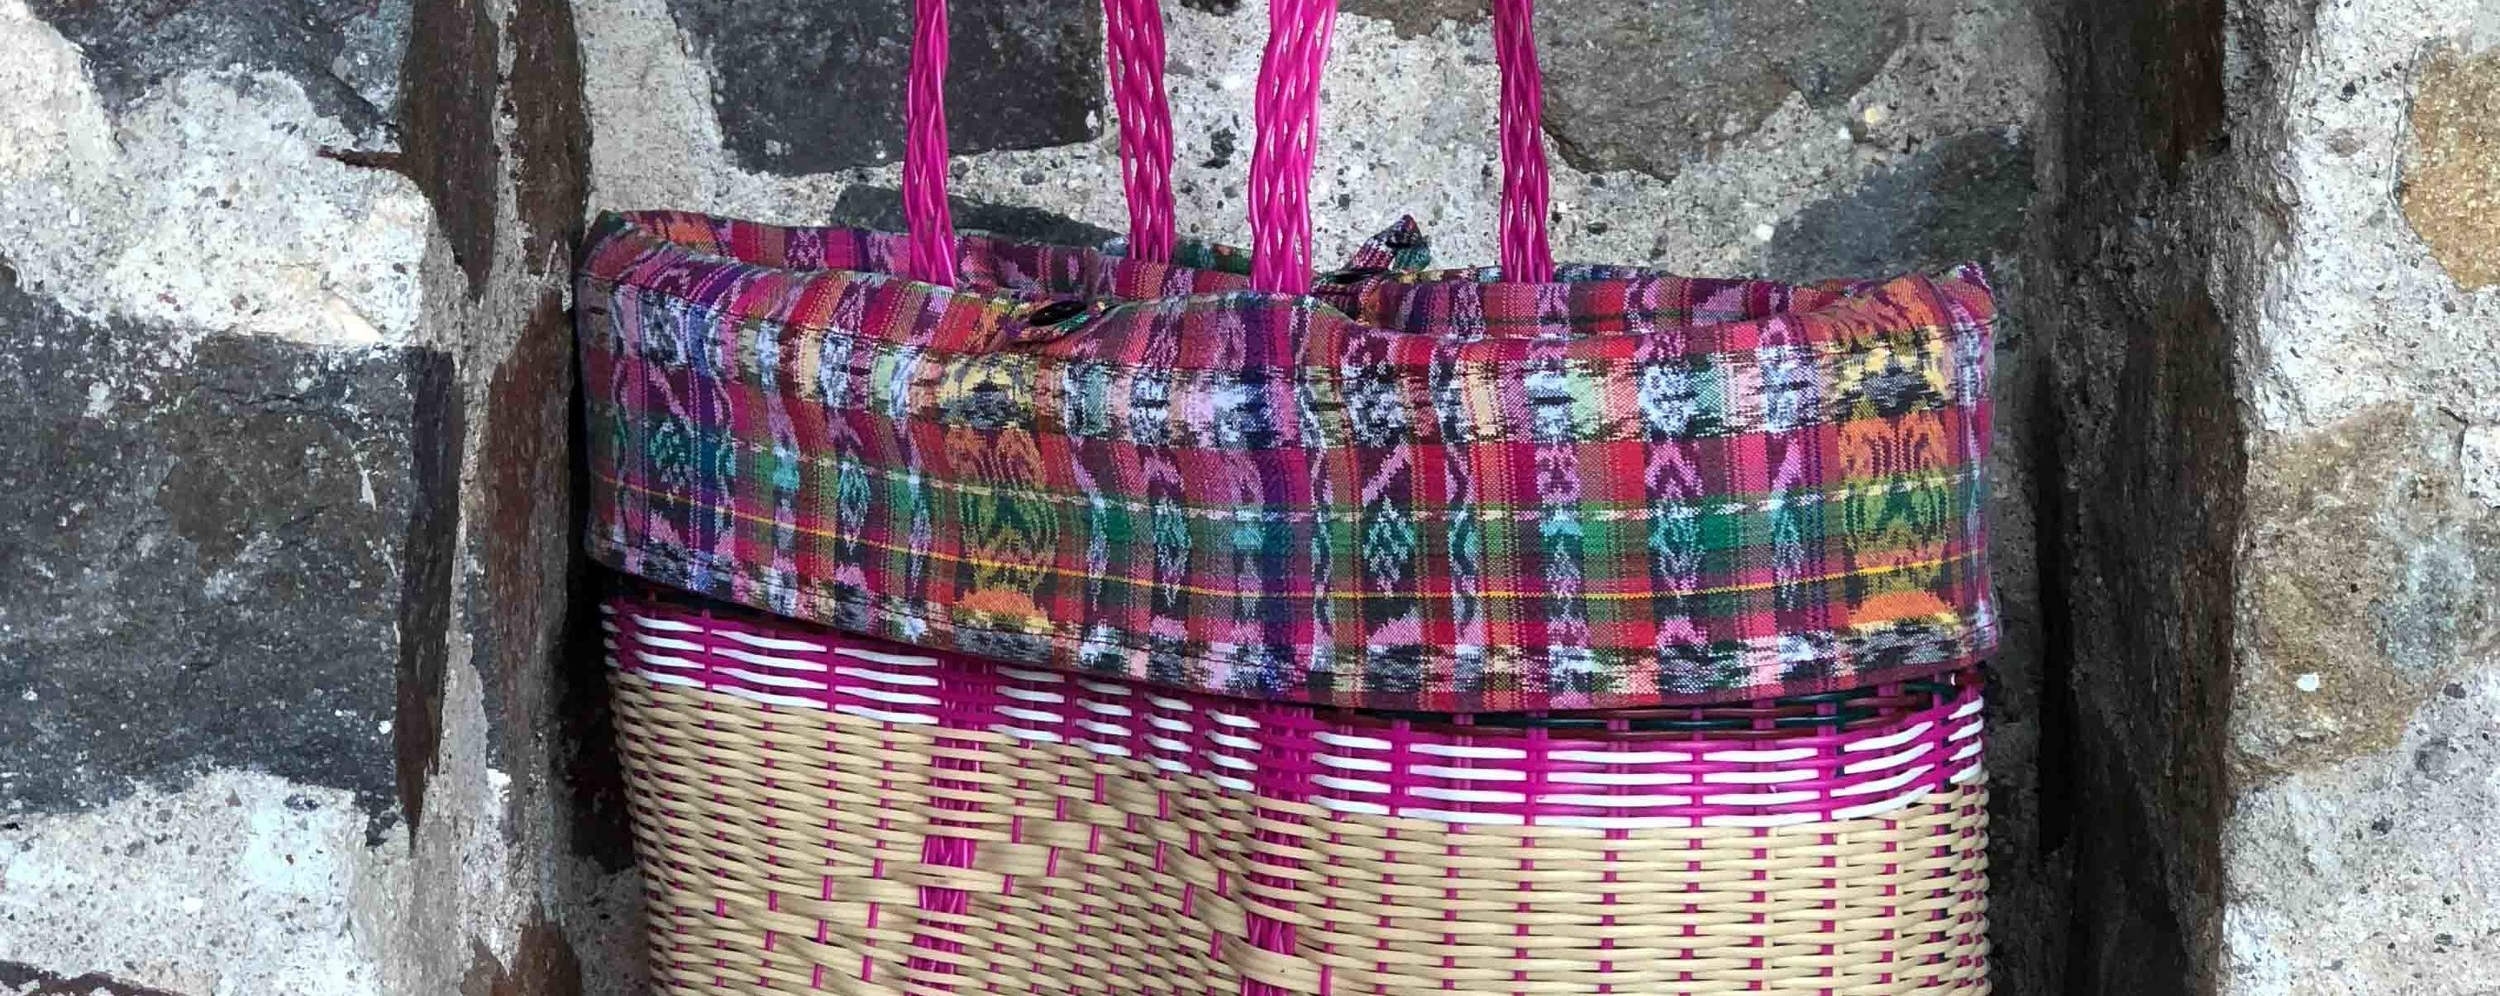 accessories-cesta_lined-large-0856.jpg